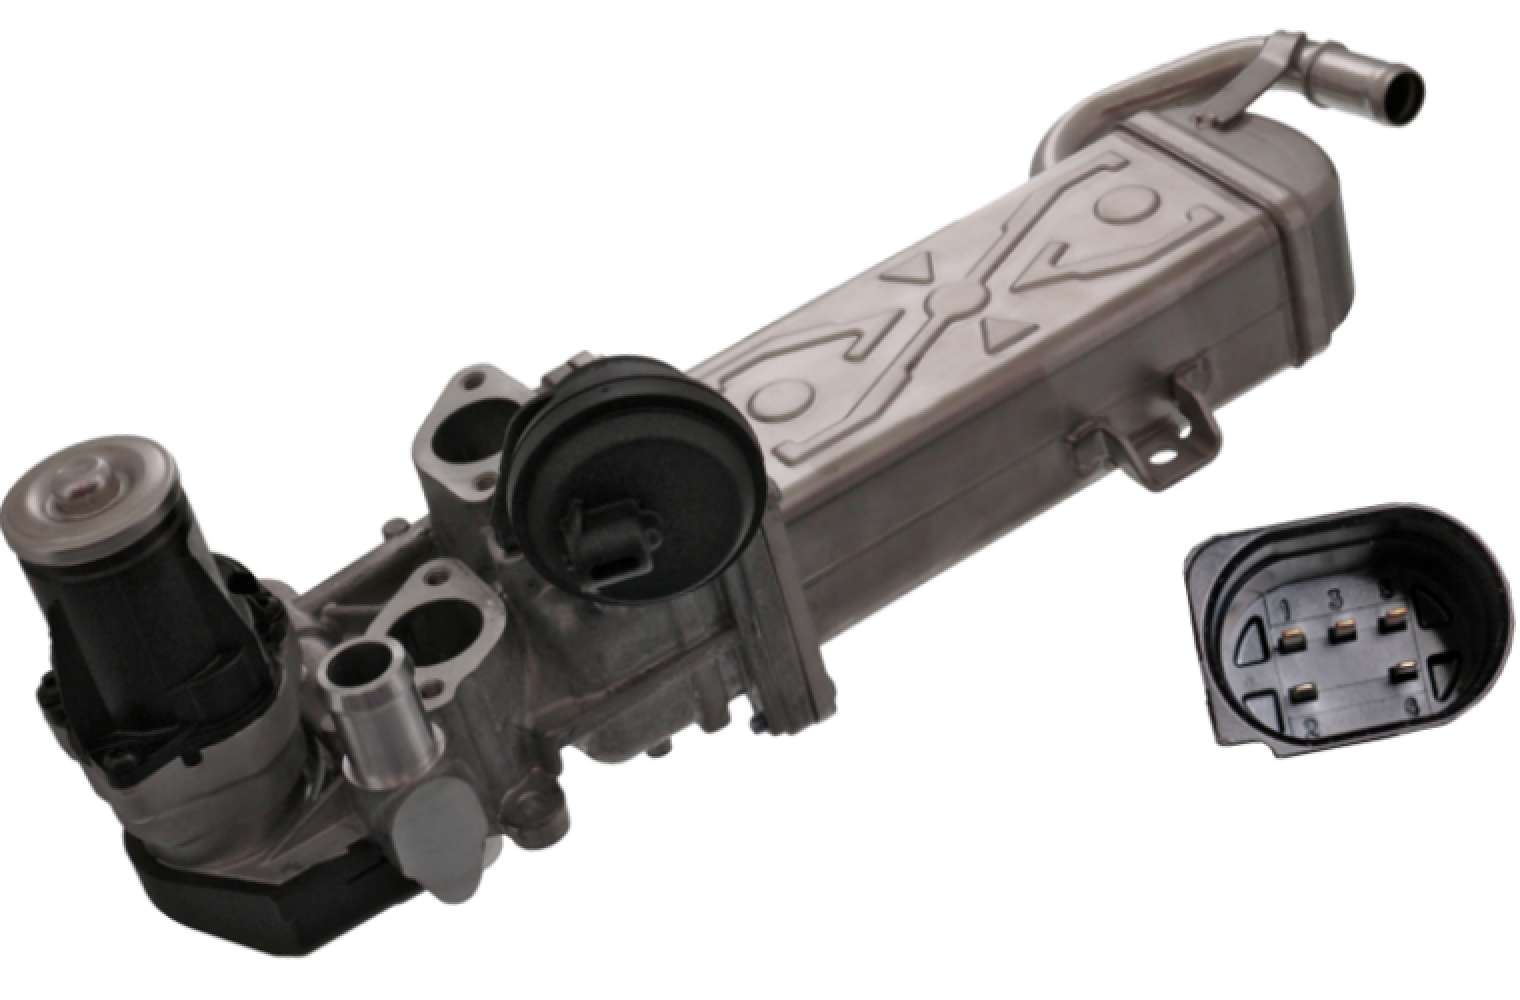 Common symptoms of a worn, clogged or faulty EGR cooler